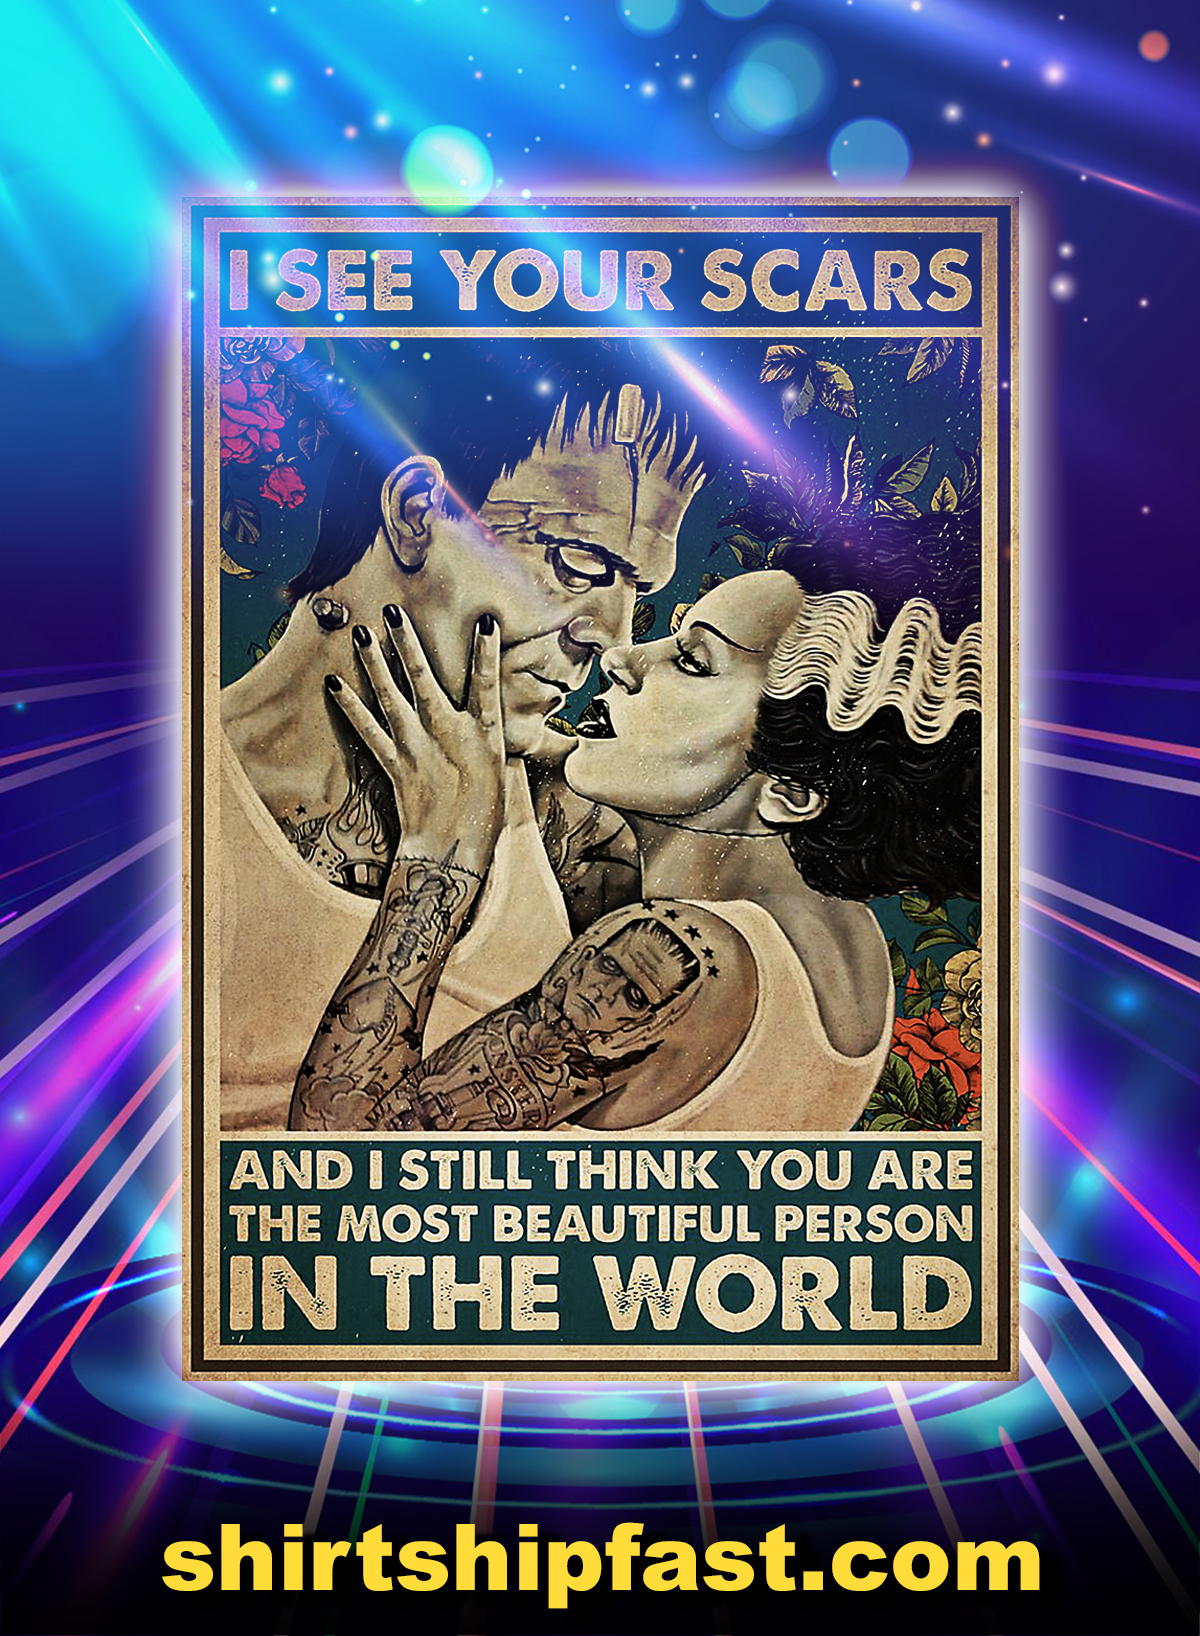 Frankenstein and bride I see your scars poster - A4